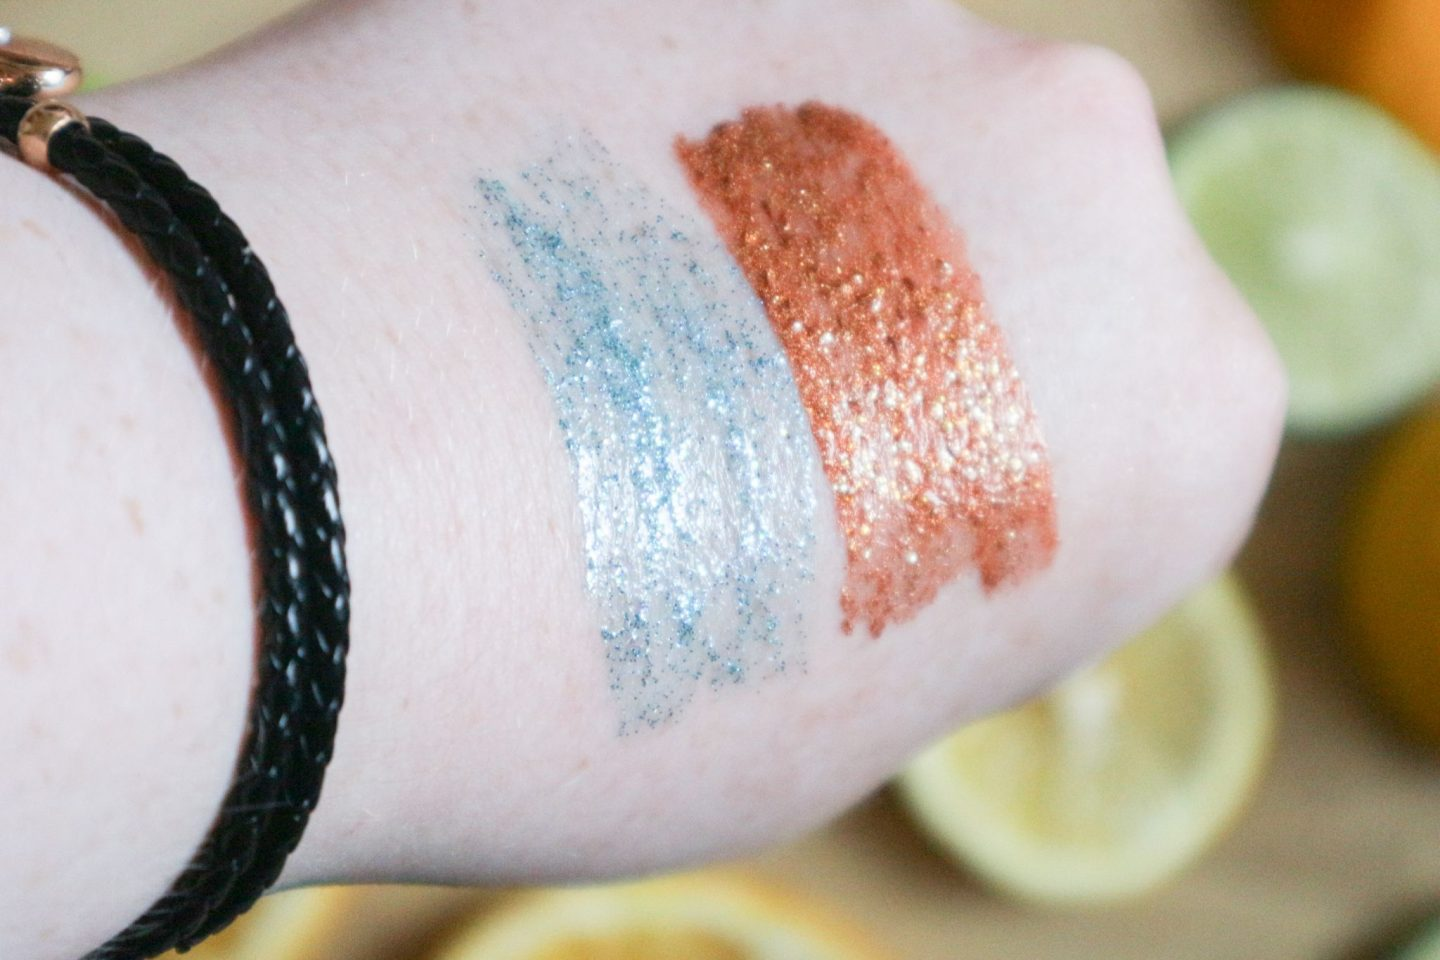 Too Faced Tutti Fruiti Twinkle Twinkle Liquid Glitter Eyeshadow swatches